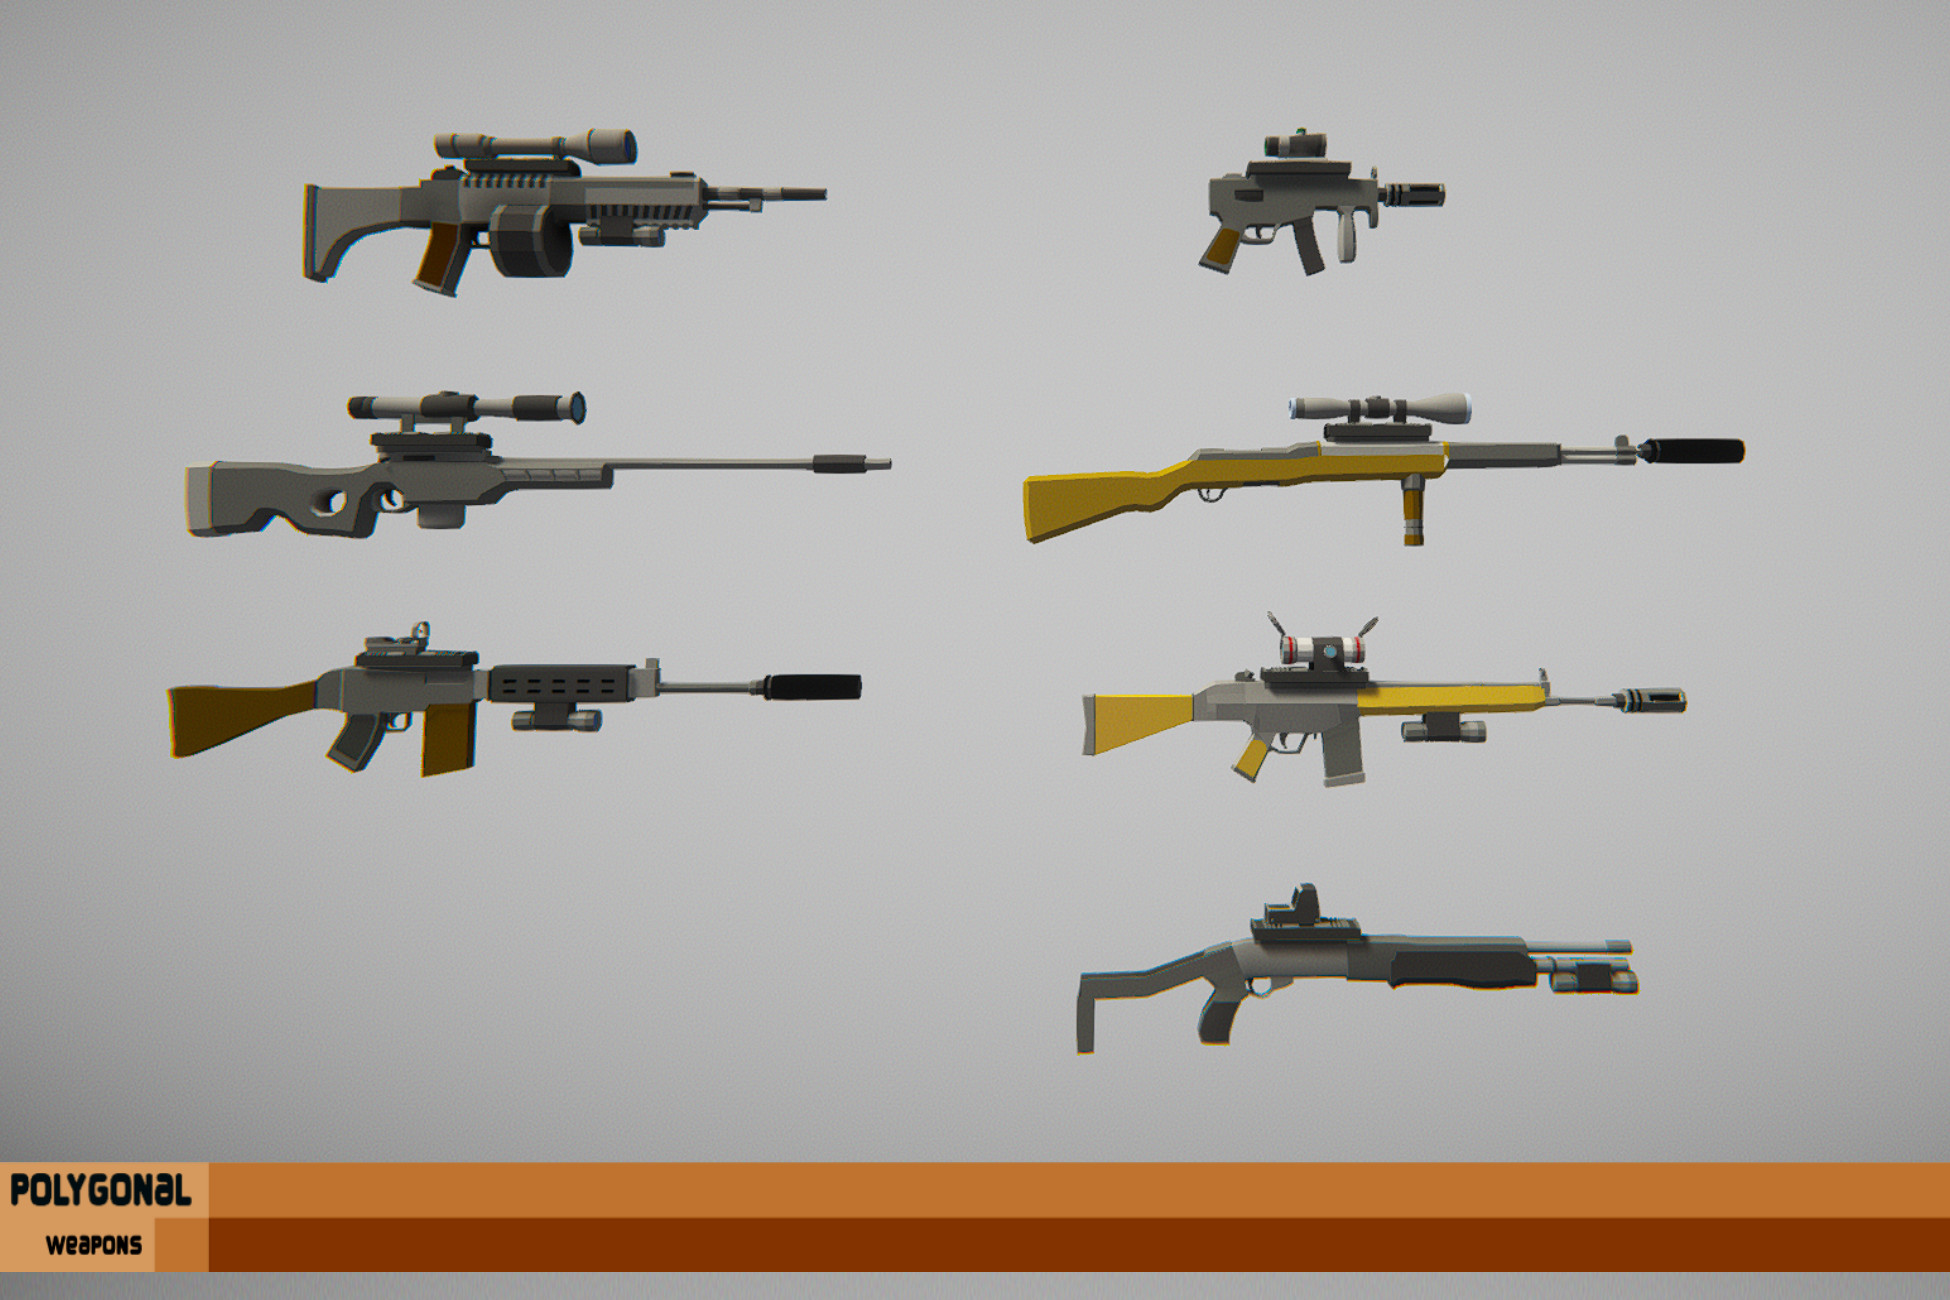 Polygonal Modern Weapons Asset Package